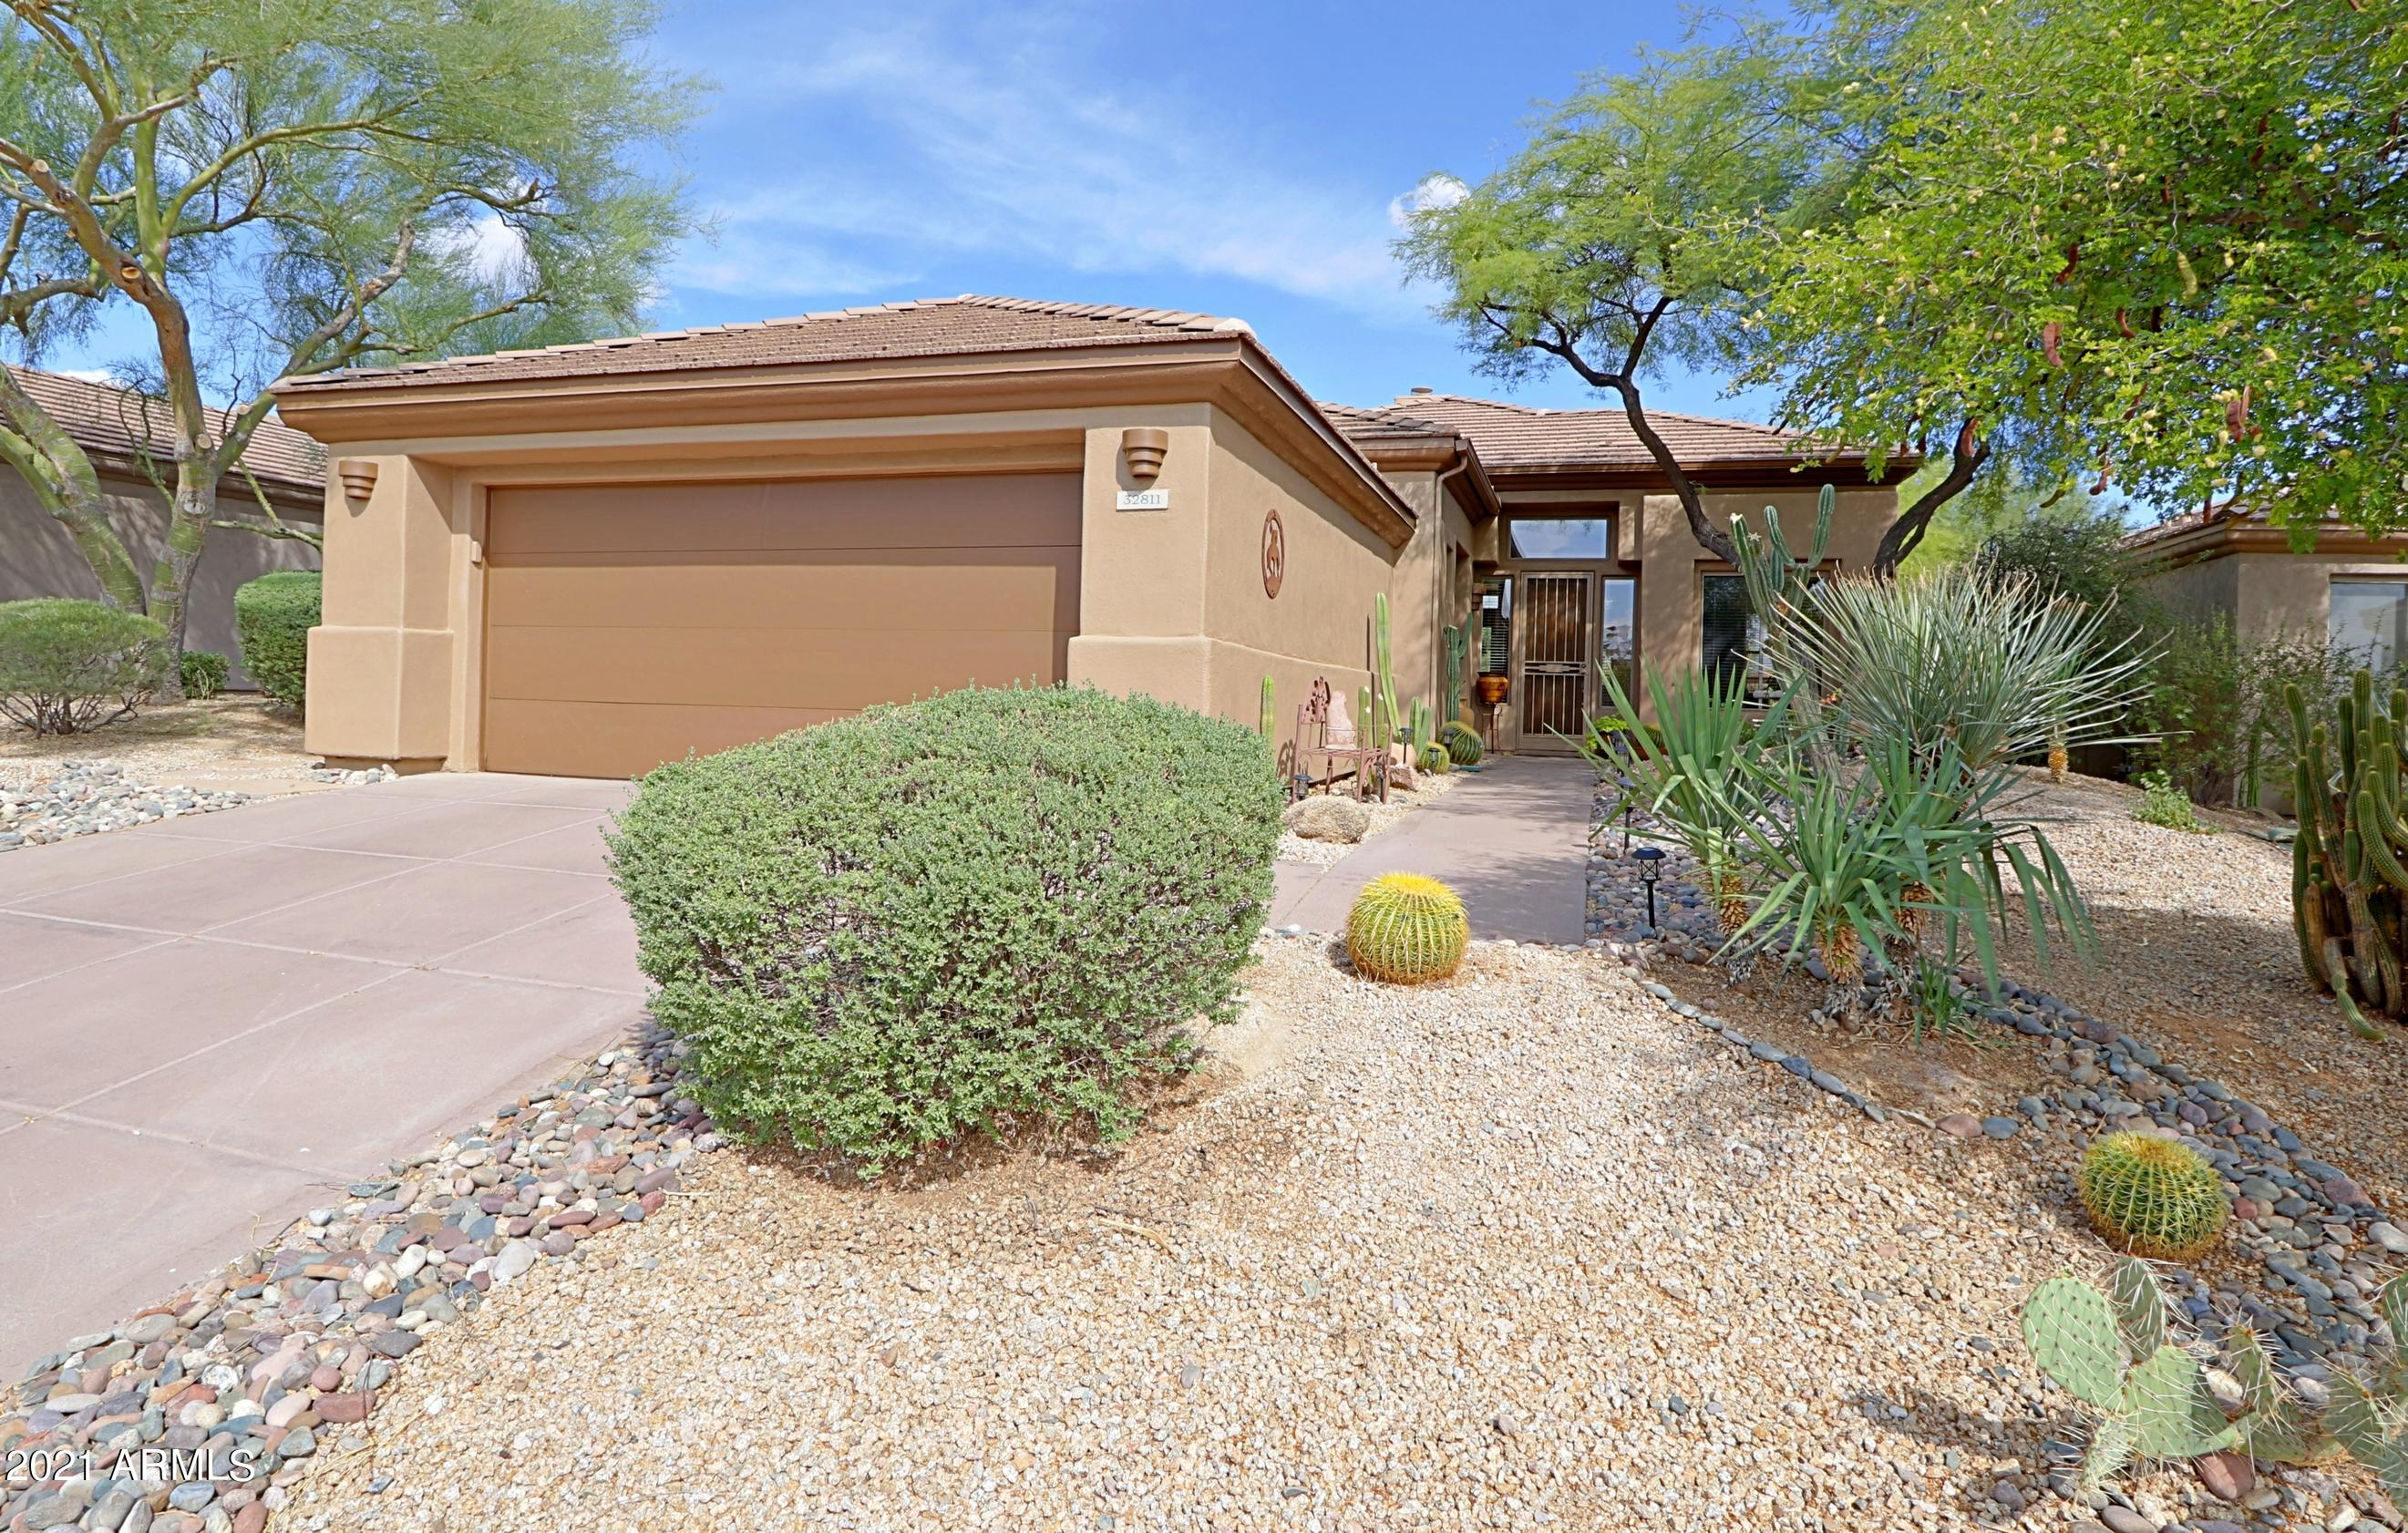 32811 N 70th Street, Scottsdale AZ 85266 - Photo 1